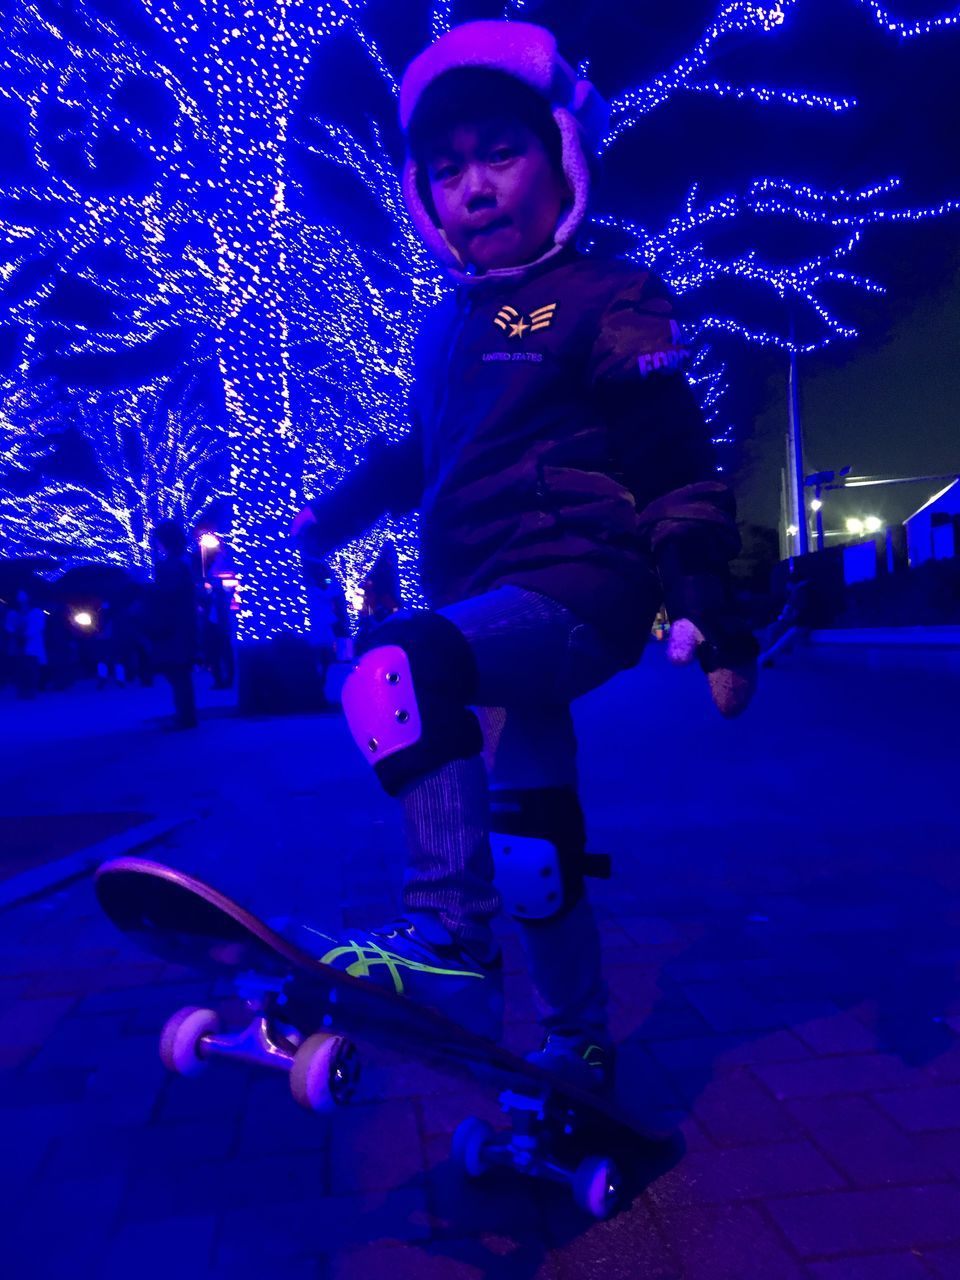 night, full length, illuminated, real people, one person, young adult, lifestyles, front view, leisure activity, street, young women, outdoors, city life, warm clothing, city, christmas lights, looking at camera, portrait, building exterior, ice skate, blue, architecture, sky, people